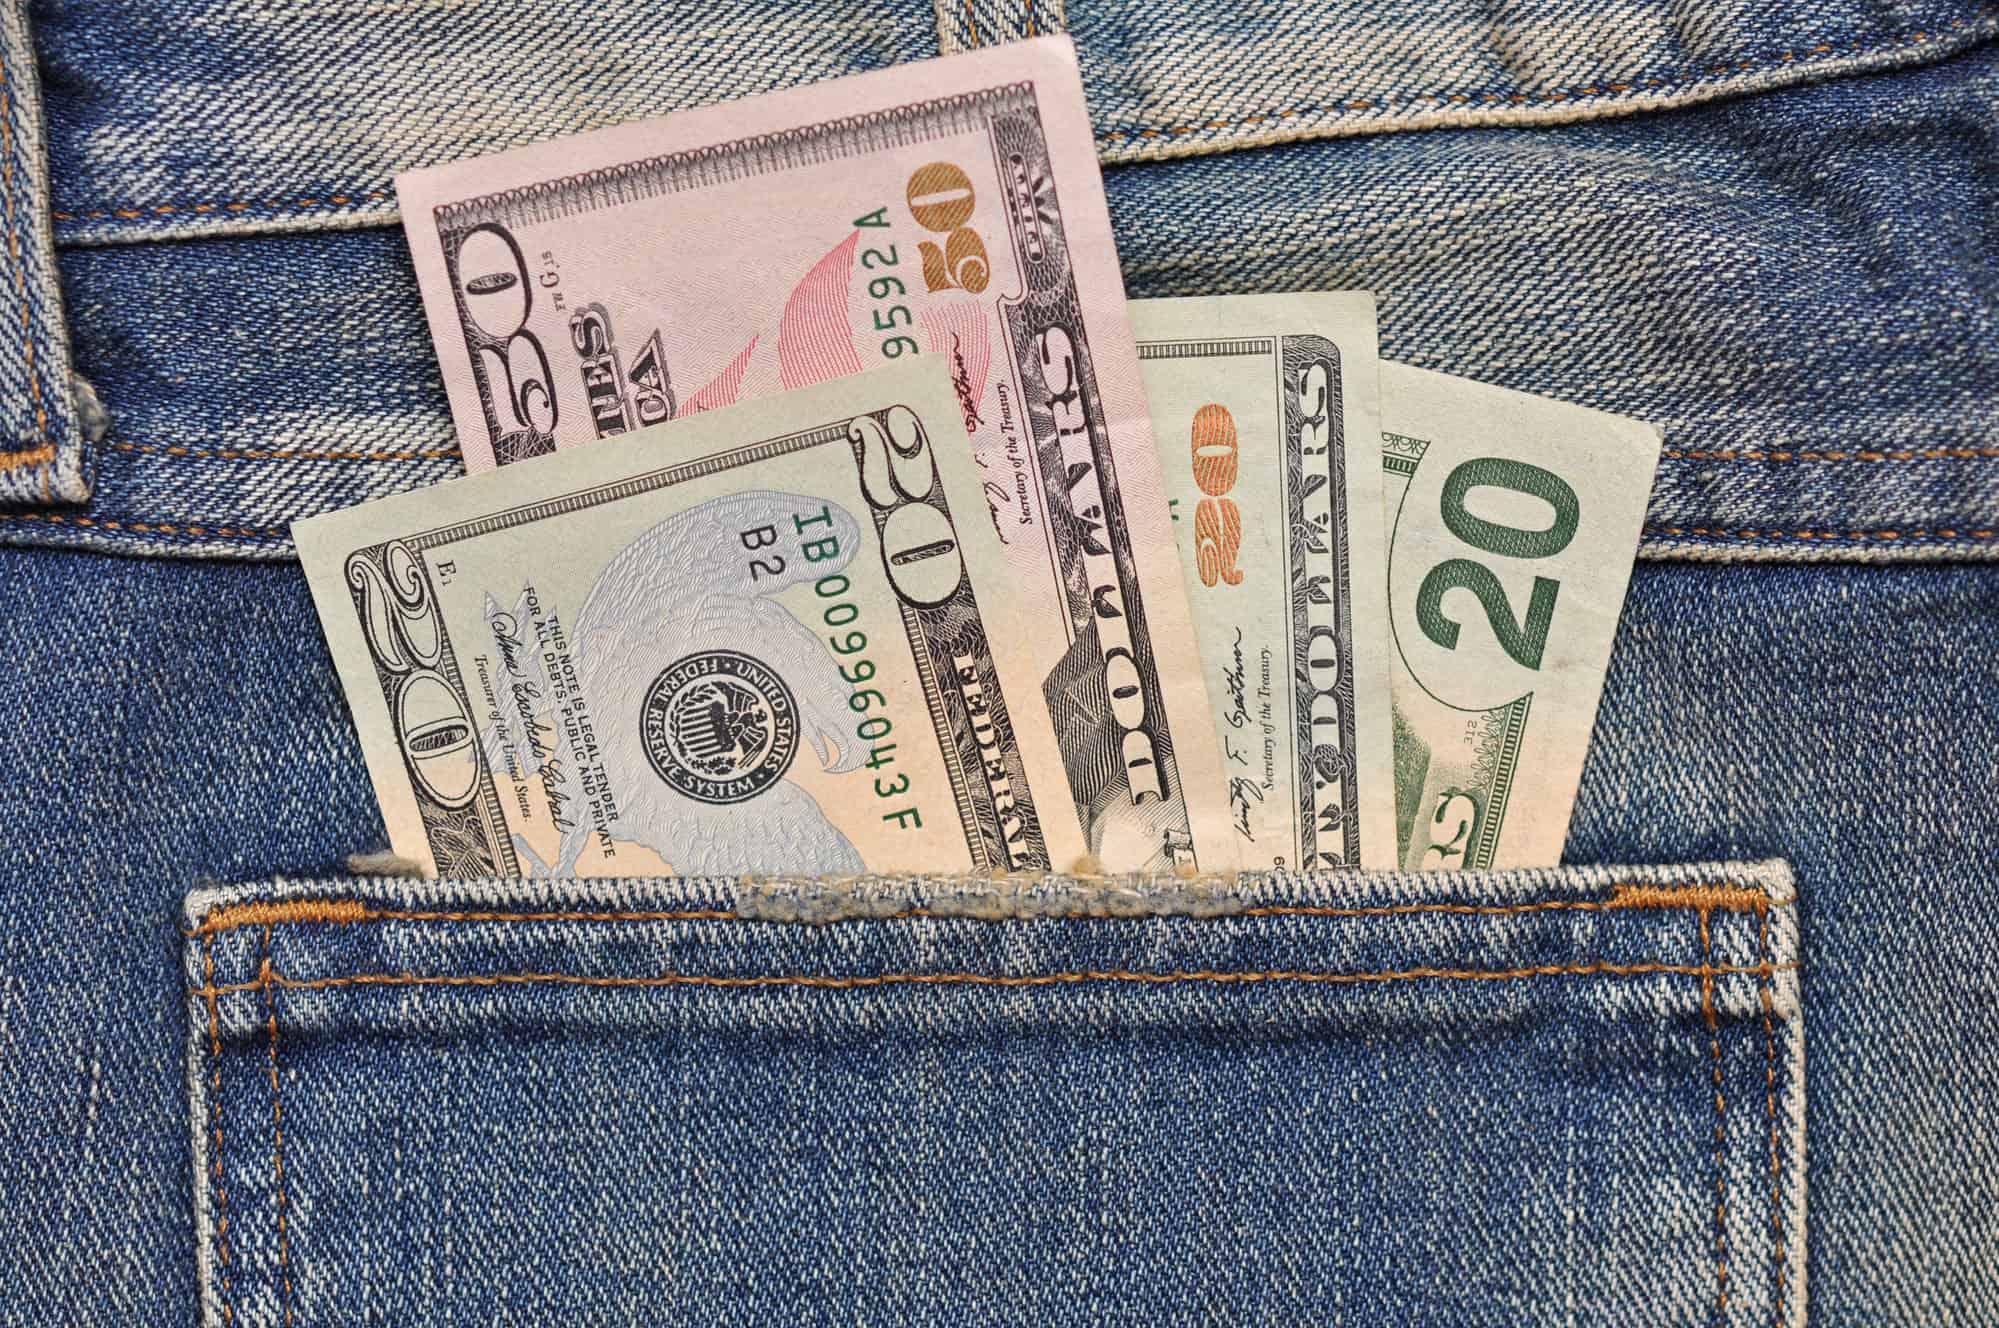 Money coming out of jean pocket